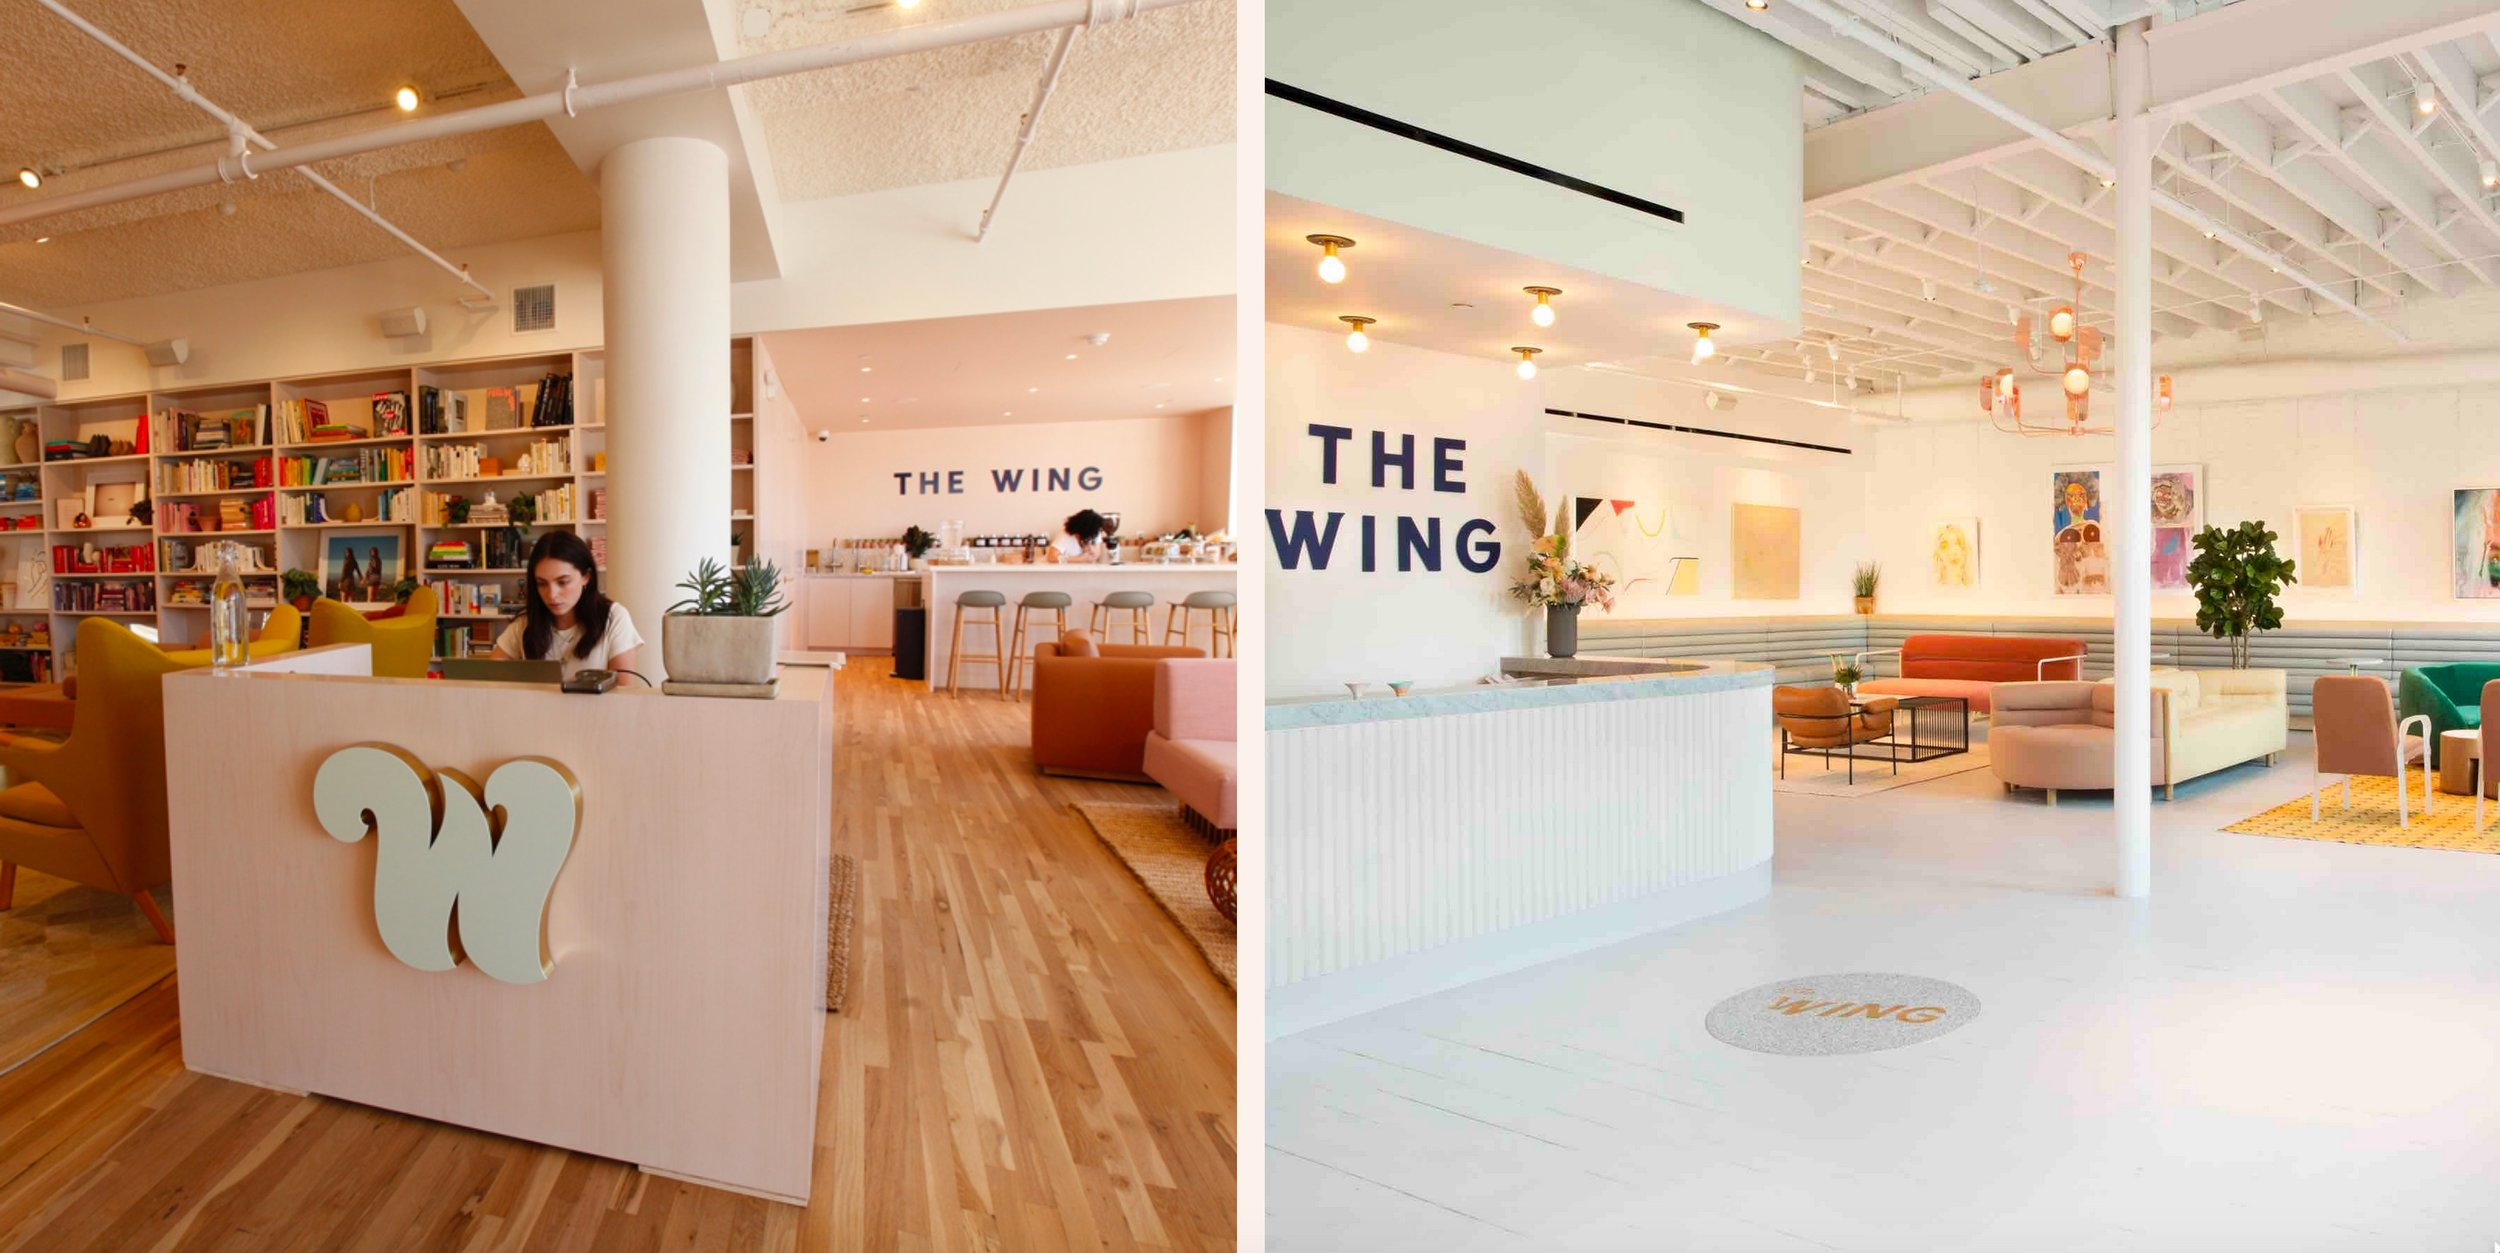 New York City's The Wing–a network of co-working and community spaces designed for women